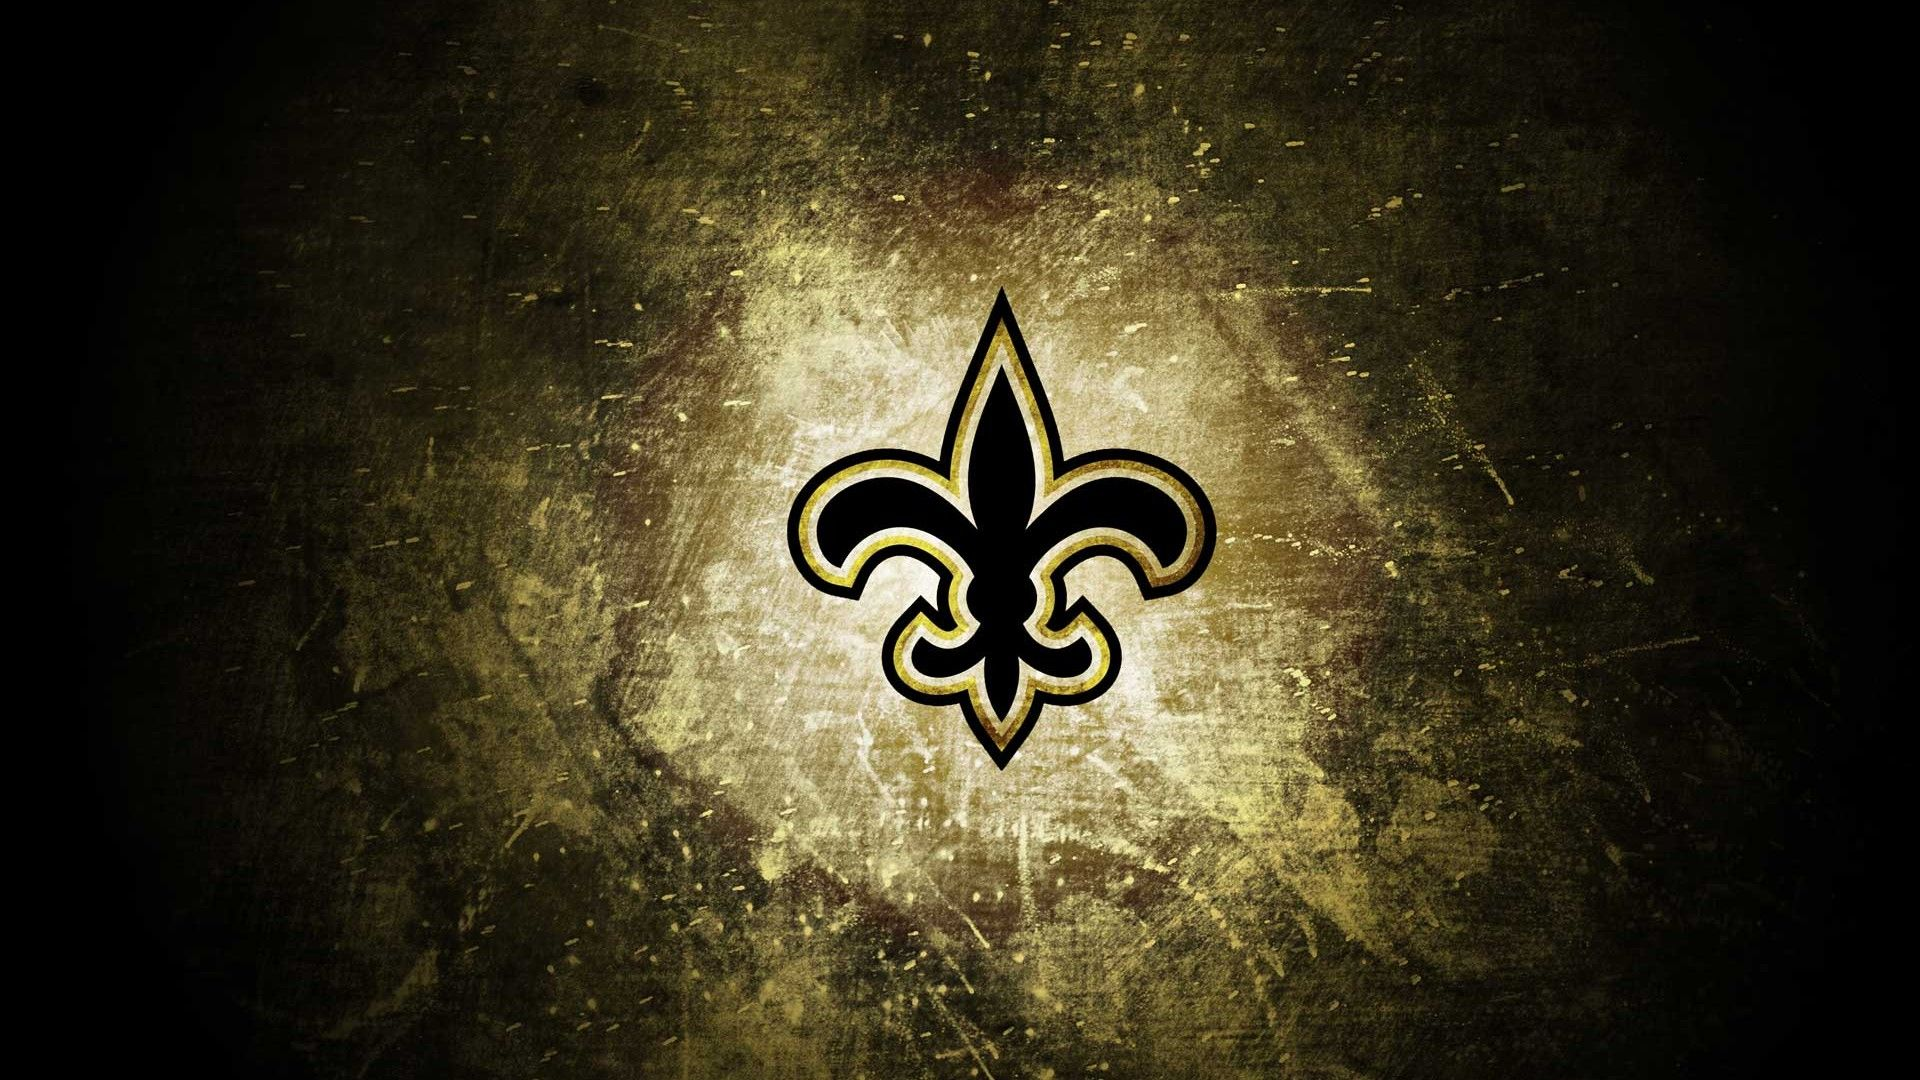 Hd New Orleans Saints Wallpapers New Orleans Saints Football